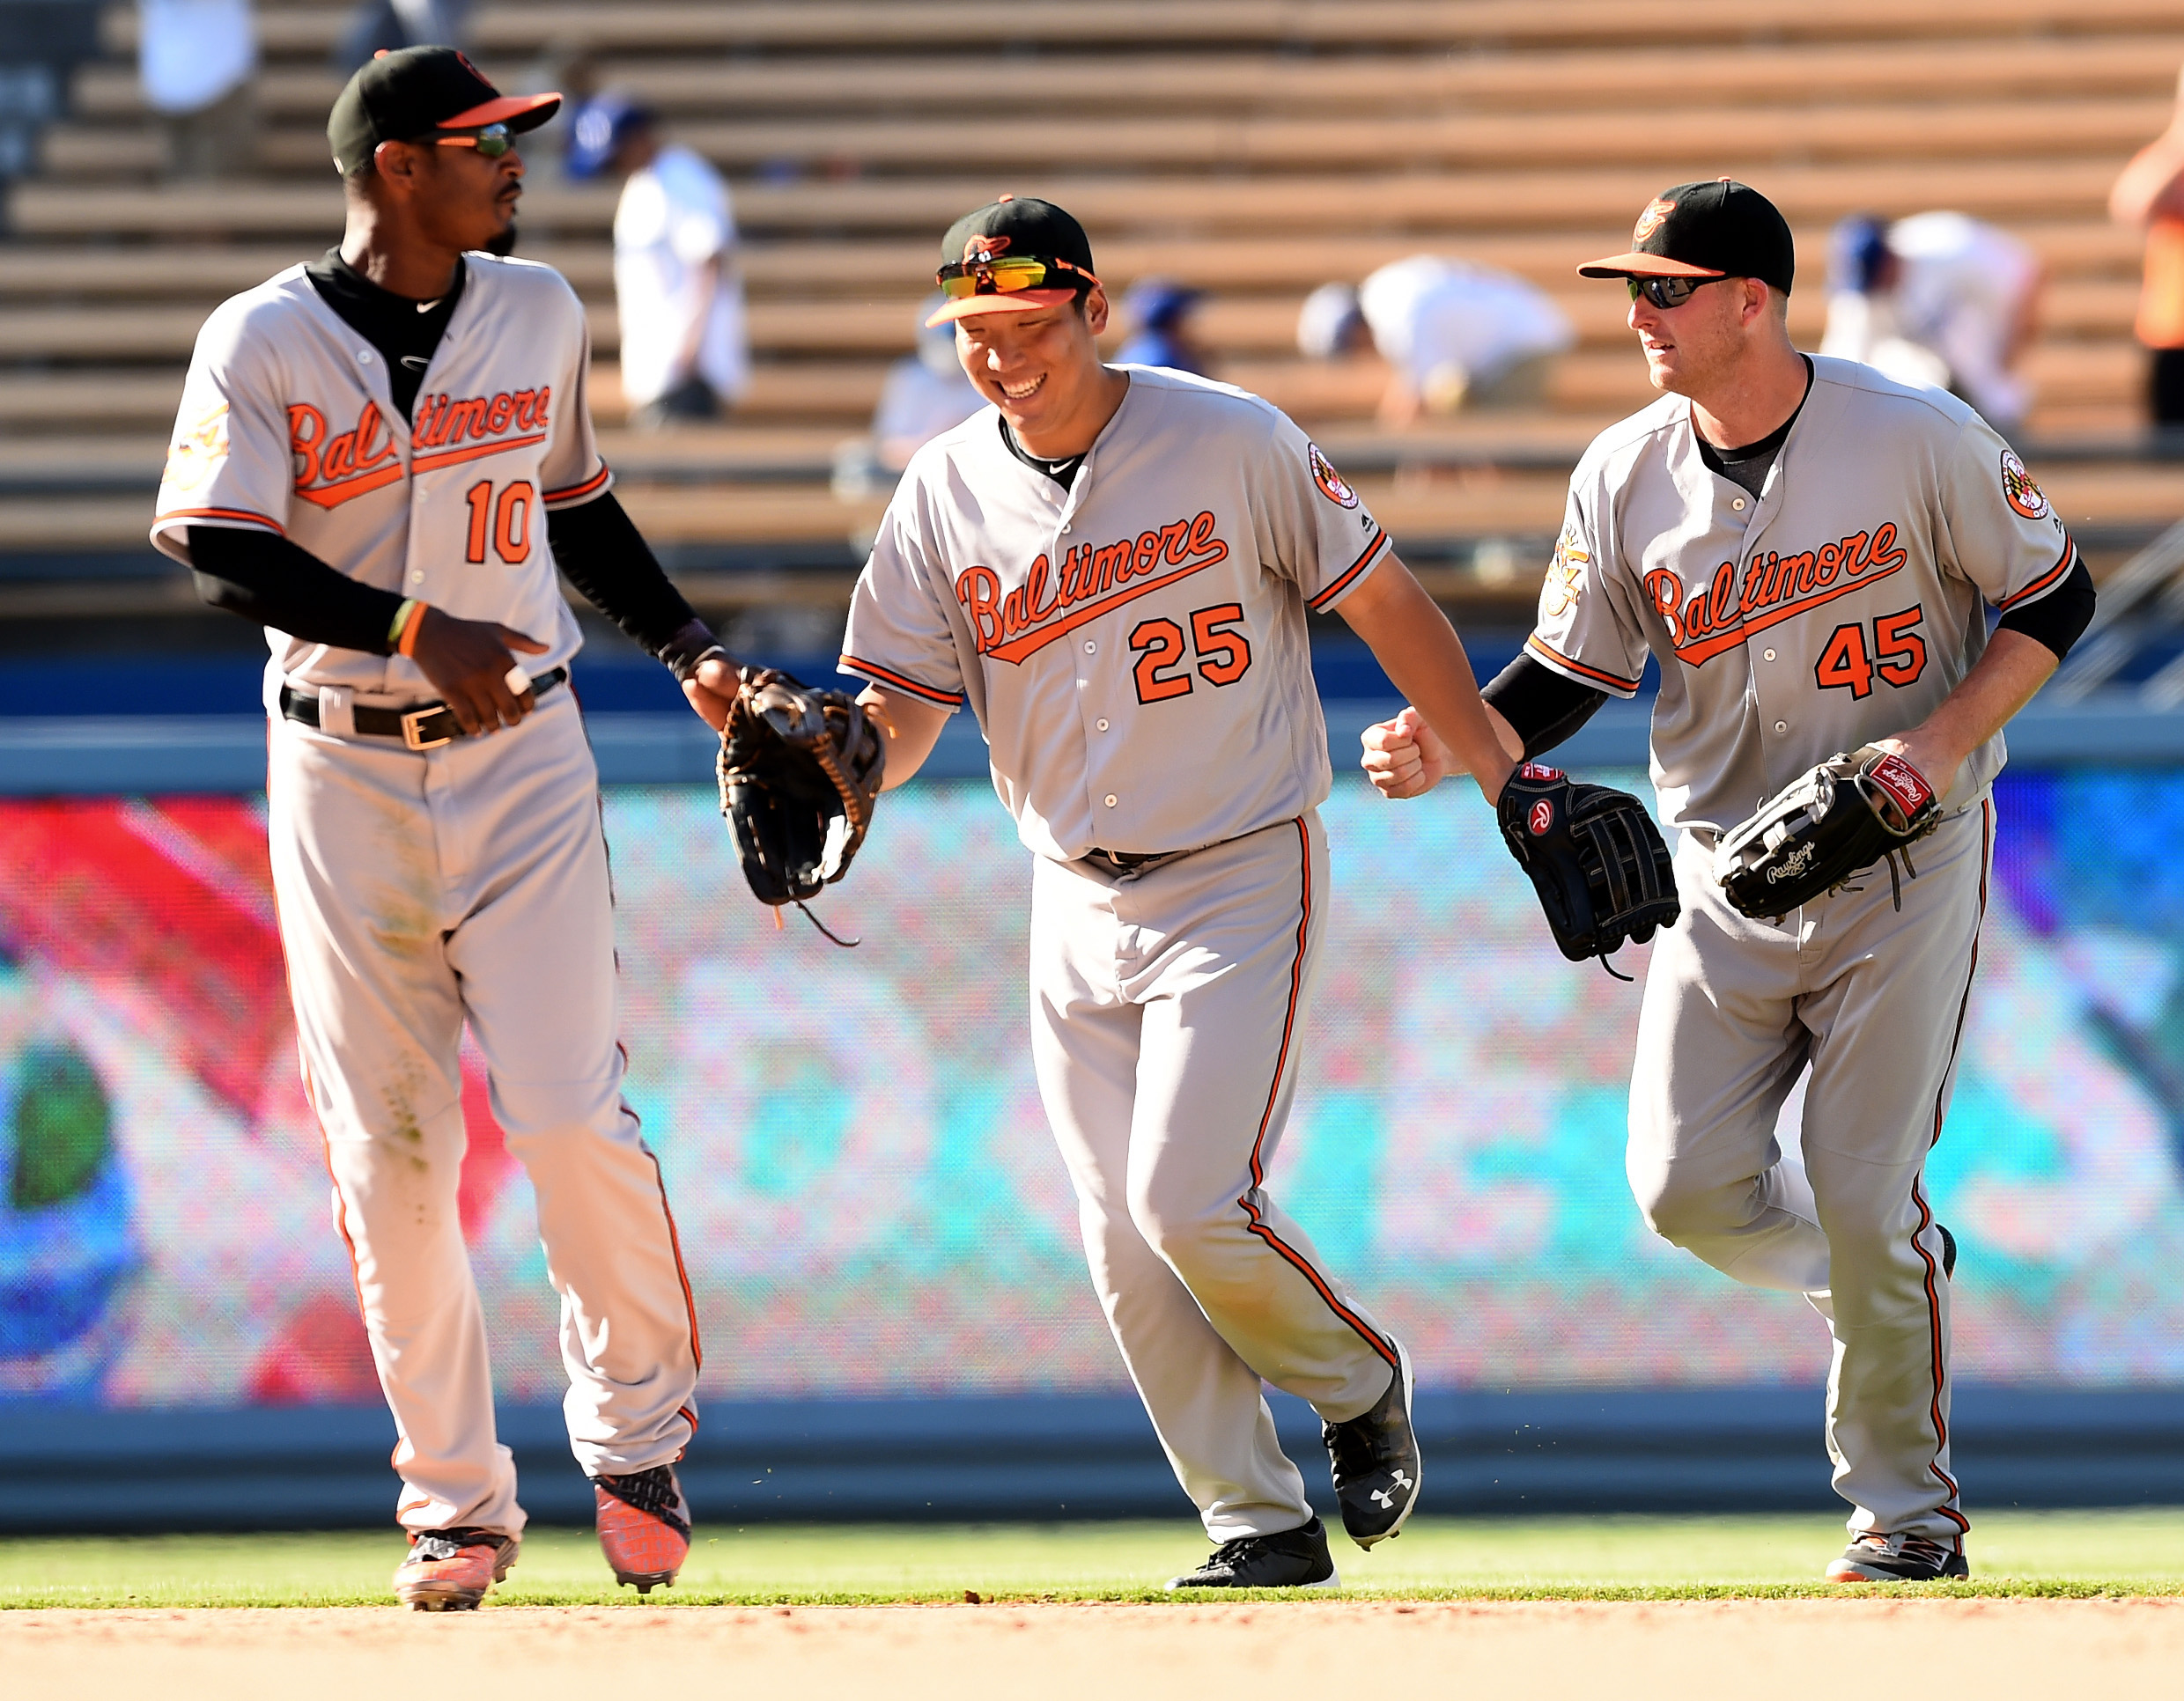 9372038-mlb-baltimore-orioles-at-los-angeles-dodgers